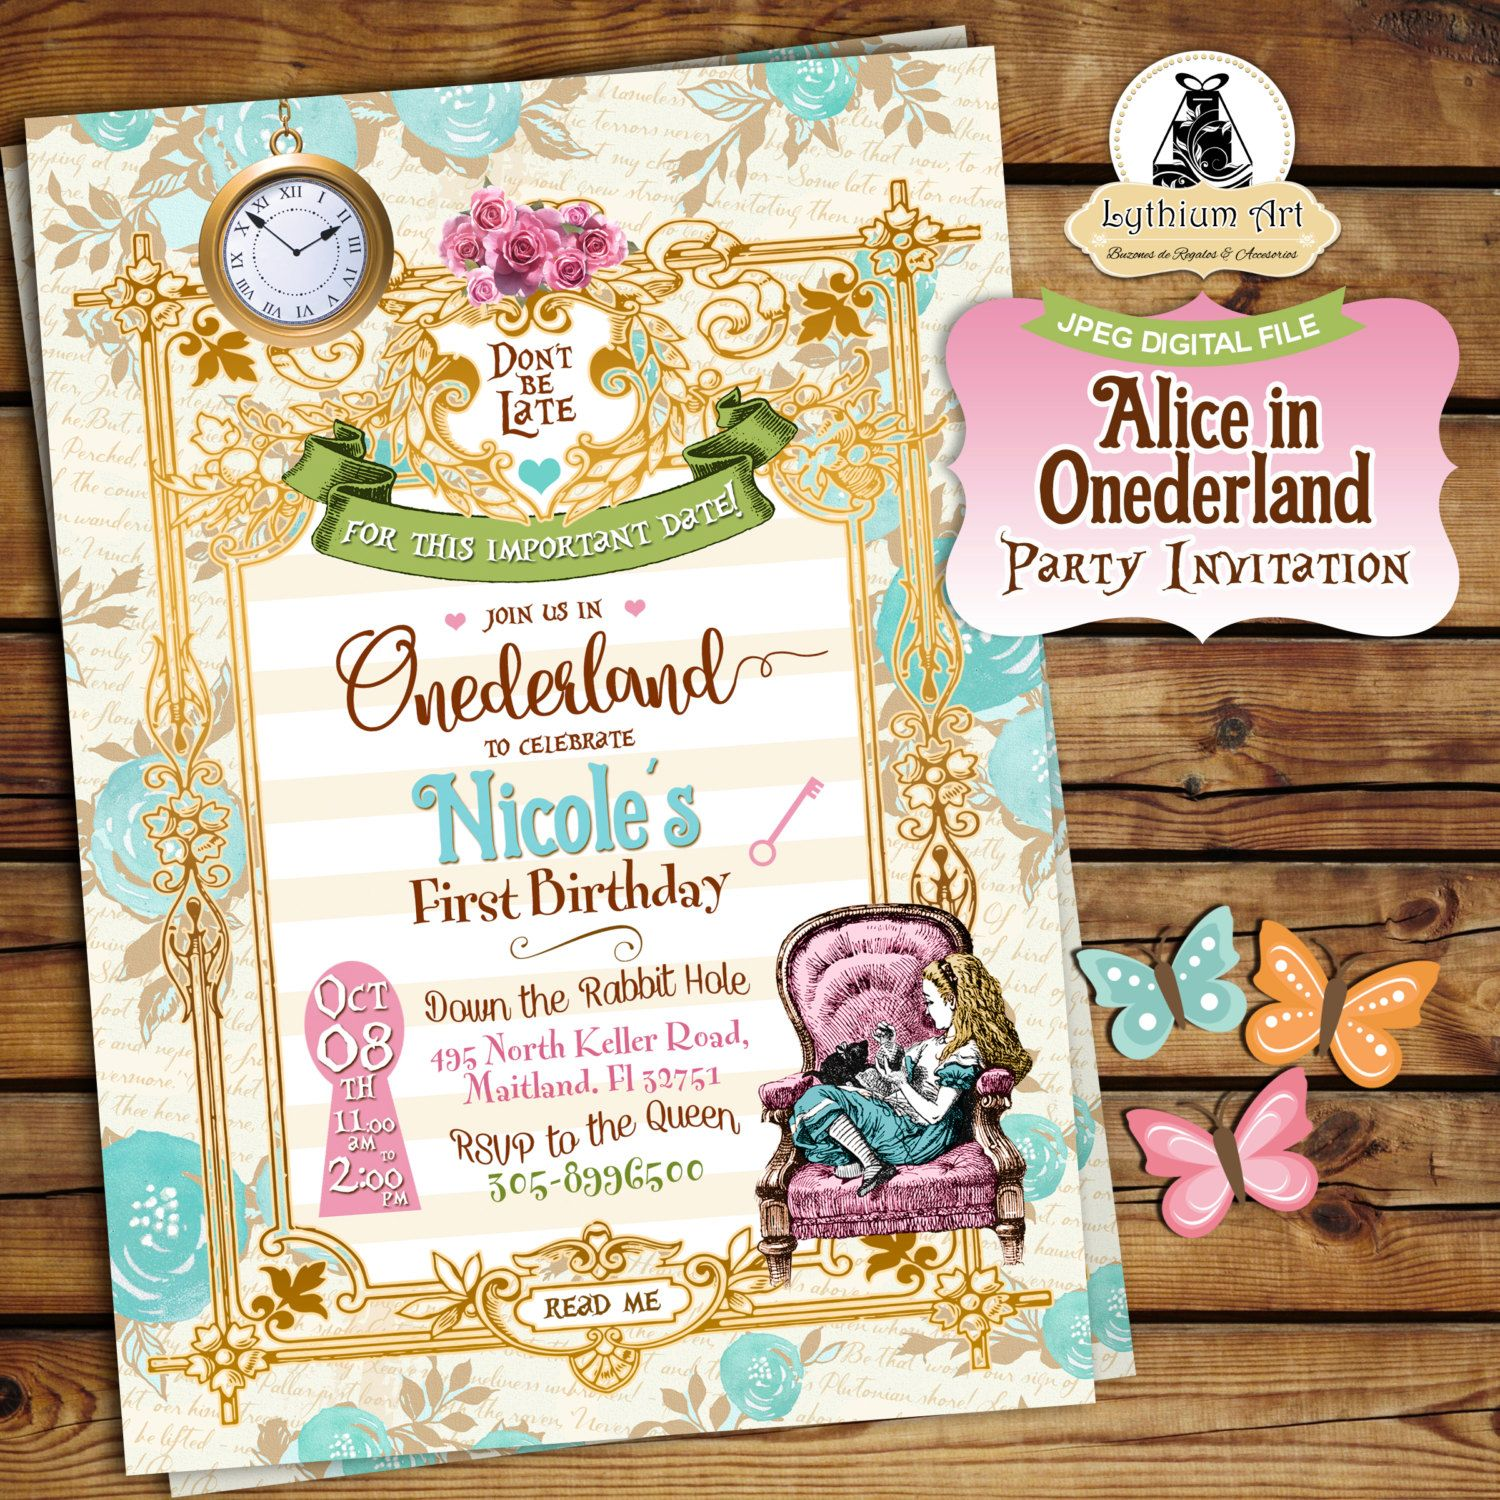 Alice in ederland Invitation Alice in Wonderland Invitation